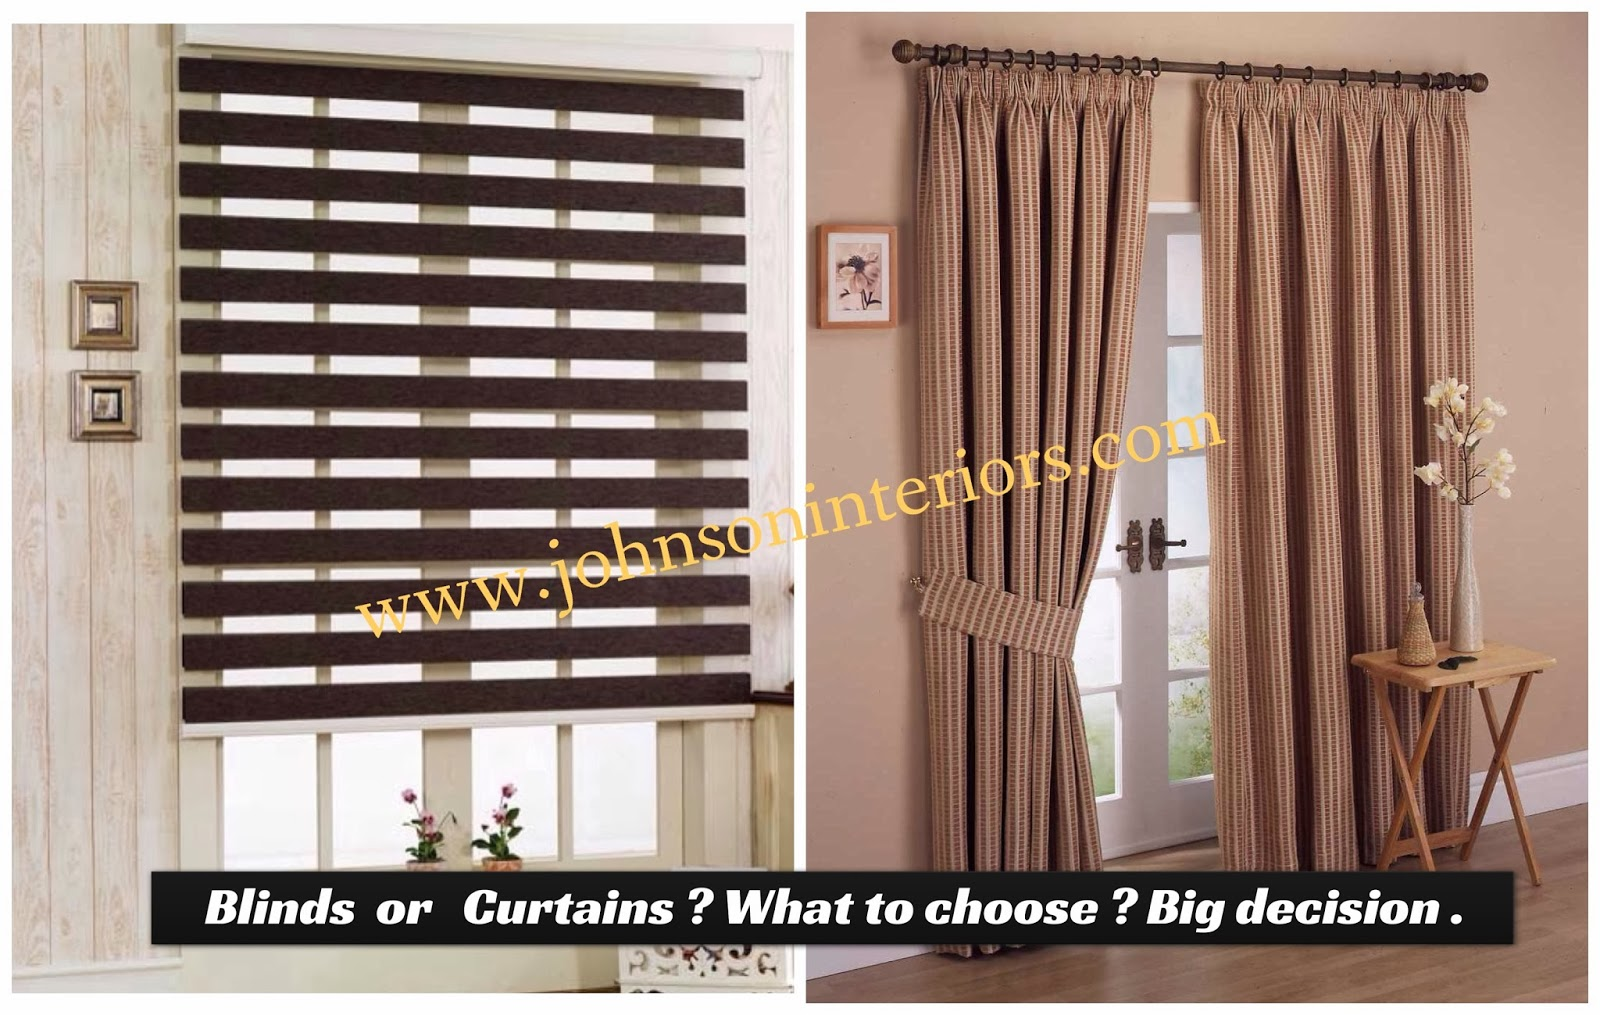 Johnson Blinds BLINDS OR CURTAINS WHAT TO CHOOSE BIG